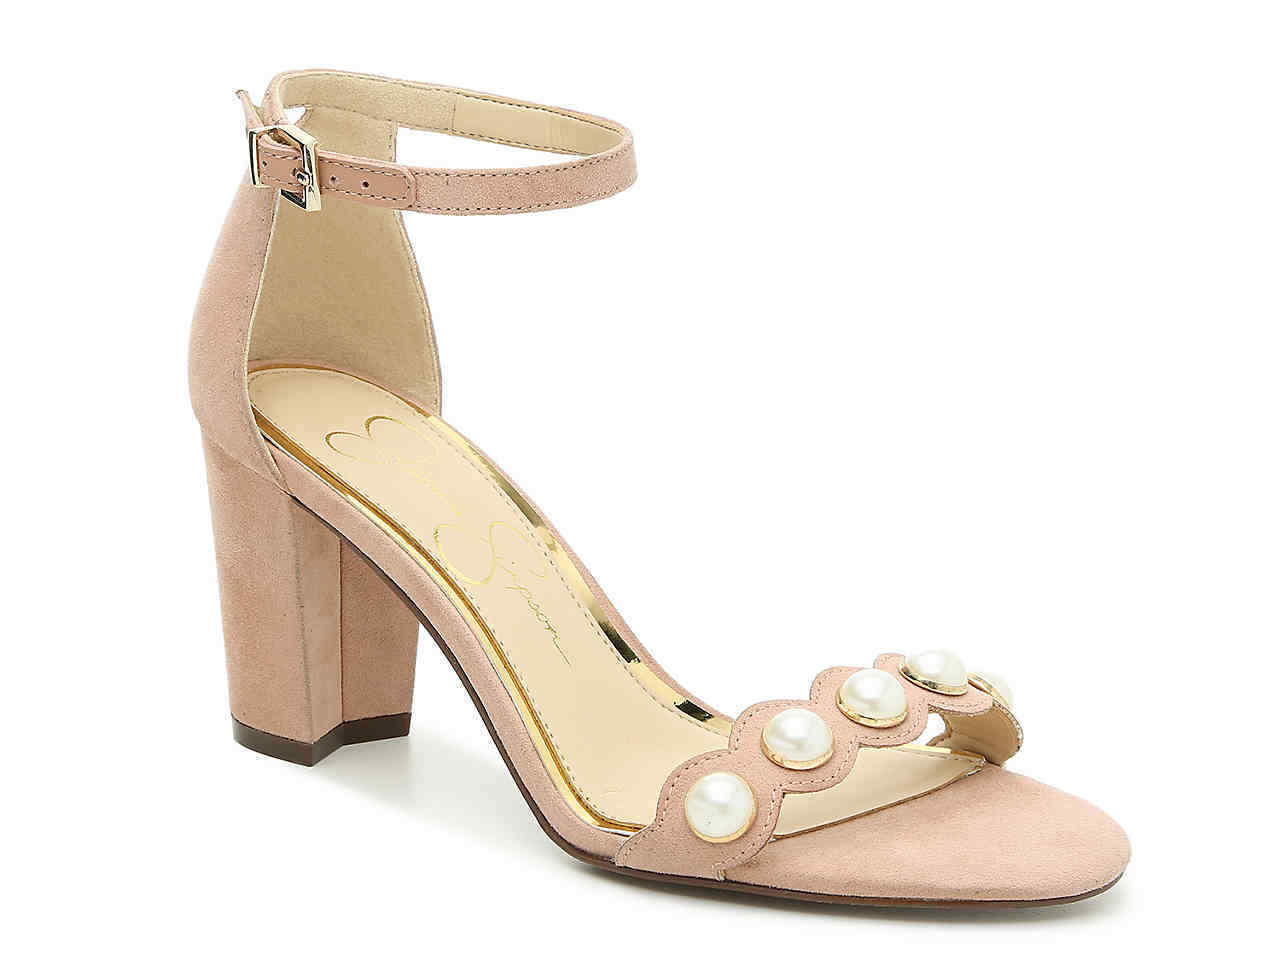 Jessica Simpson Monraley Pink with Pearls Ankle Strap Heels Womens Size 10M NEW